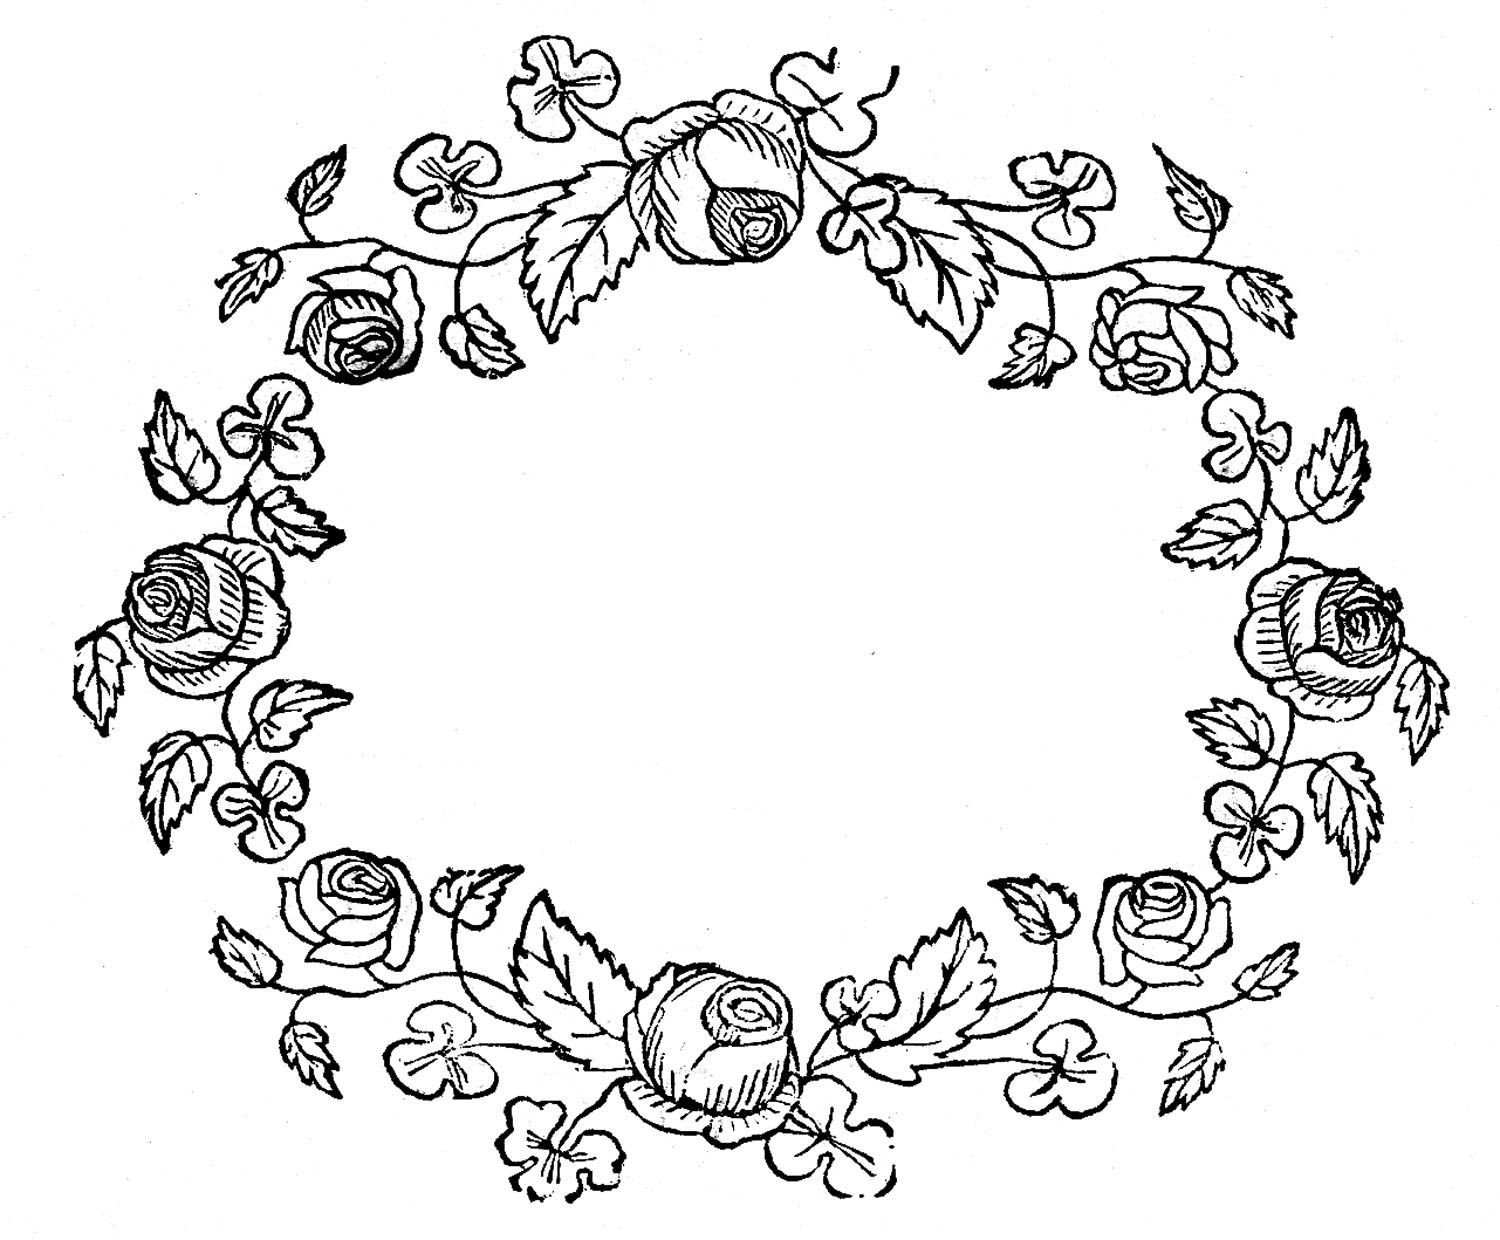 Royalty free images rose wreaths embroidery pattern tattoo